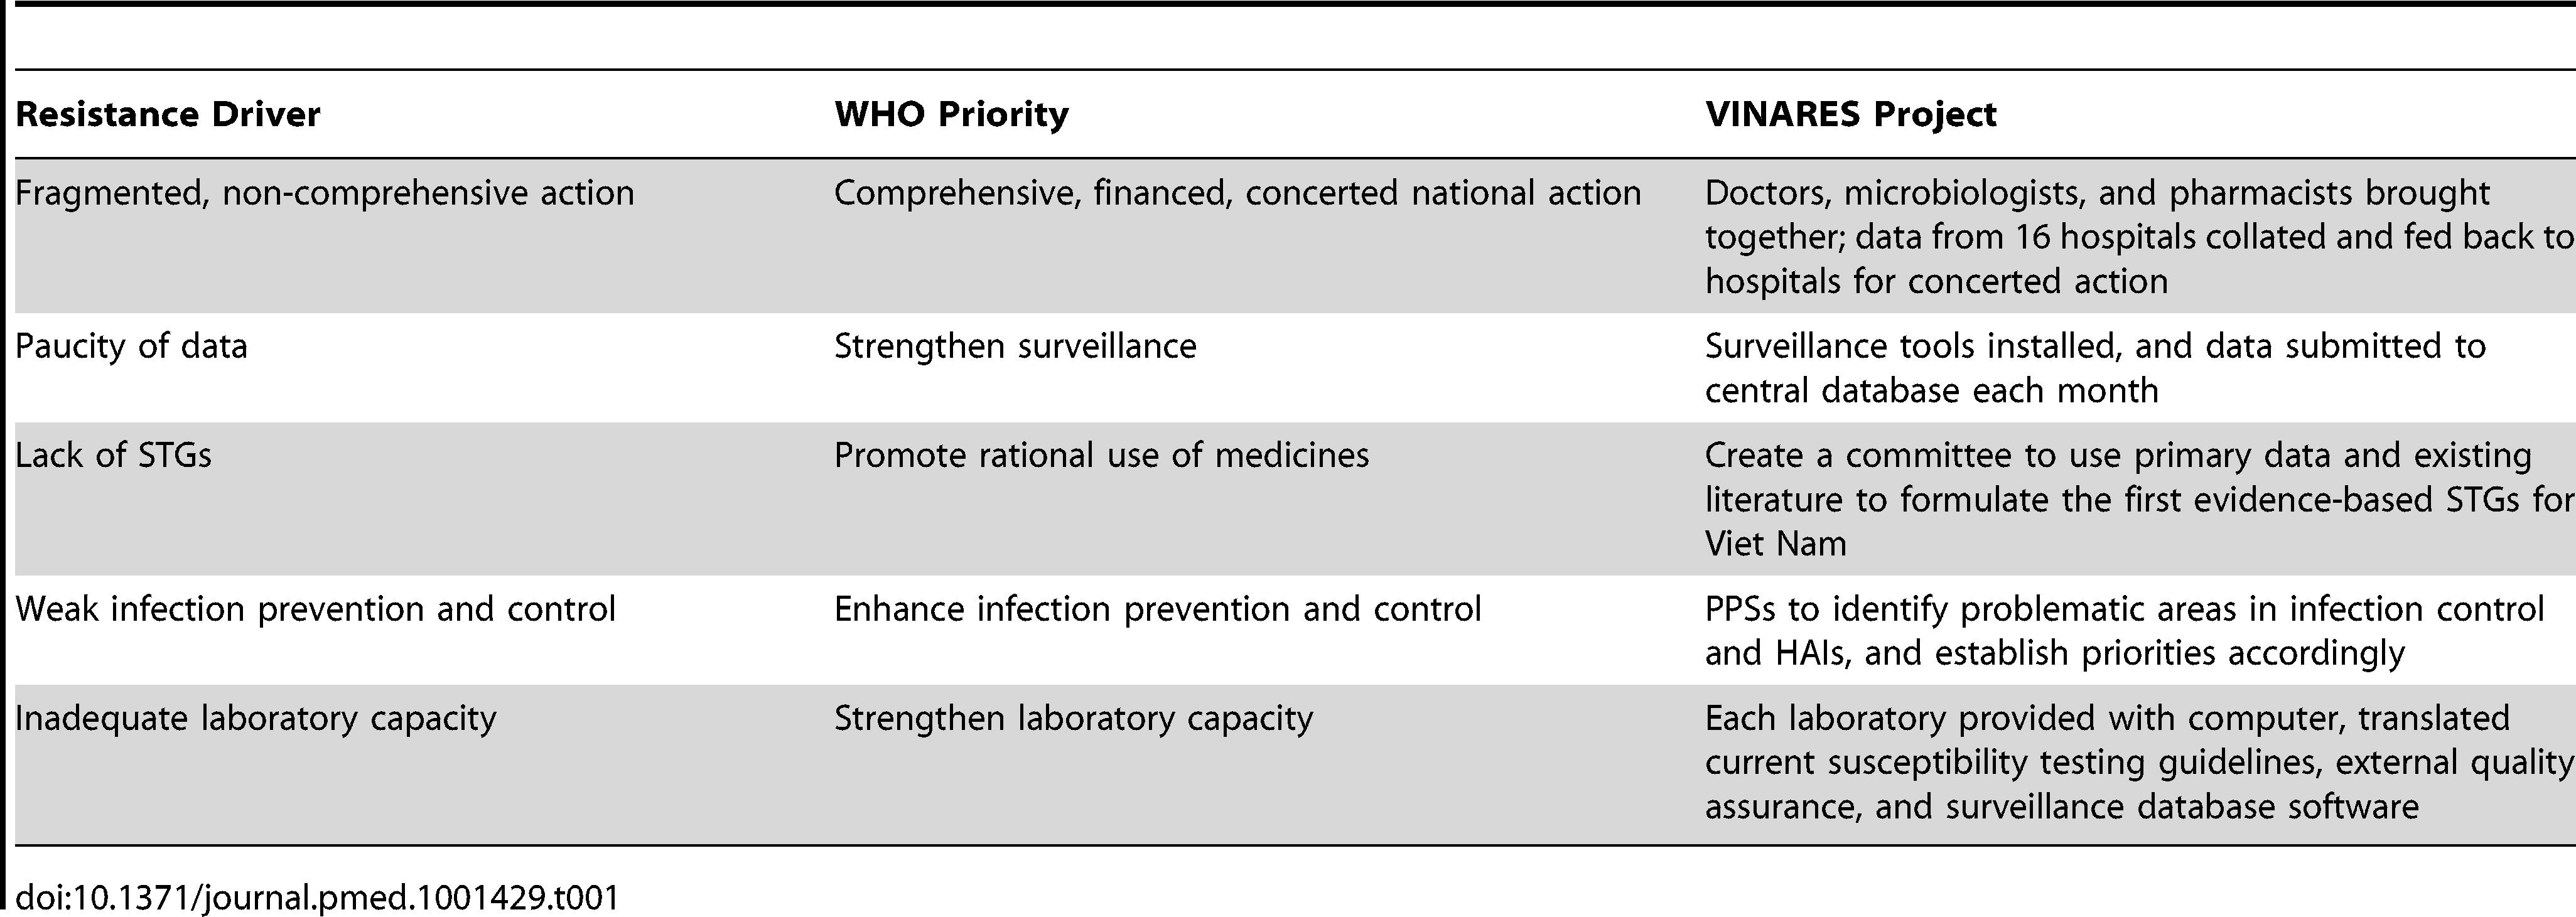 "Drivers of antibiotic resistance, hospital-related WHO policy package priorities, and how these are met by the VINARES project <em class=""ref"">[10]</em>."